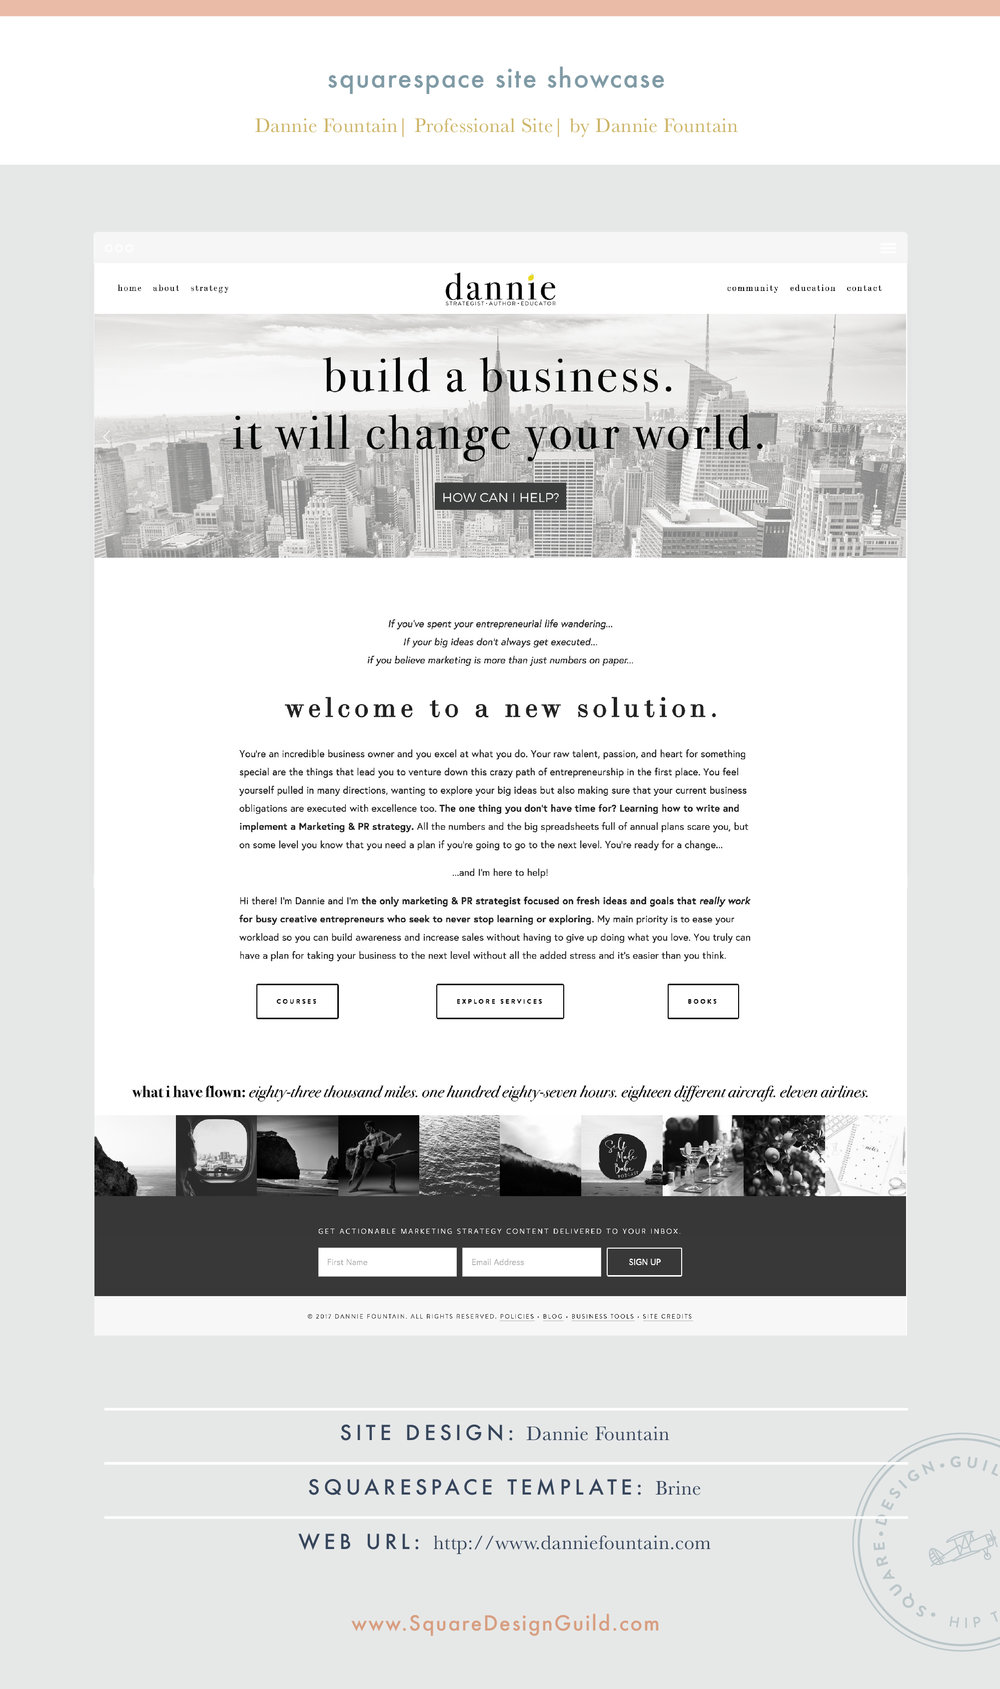 Square Design Guild | Squarespace Site Showcase | Dannie Fountain on the Brine Template